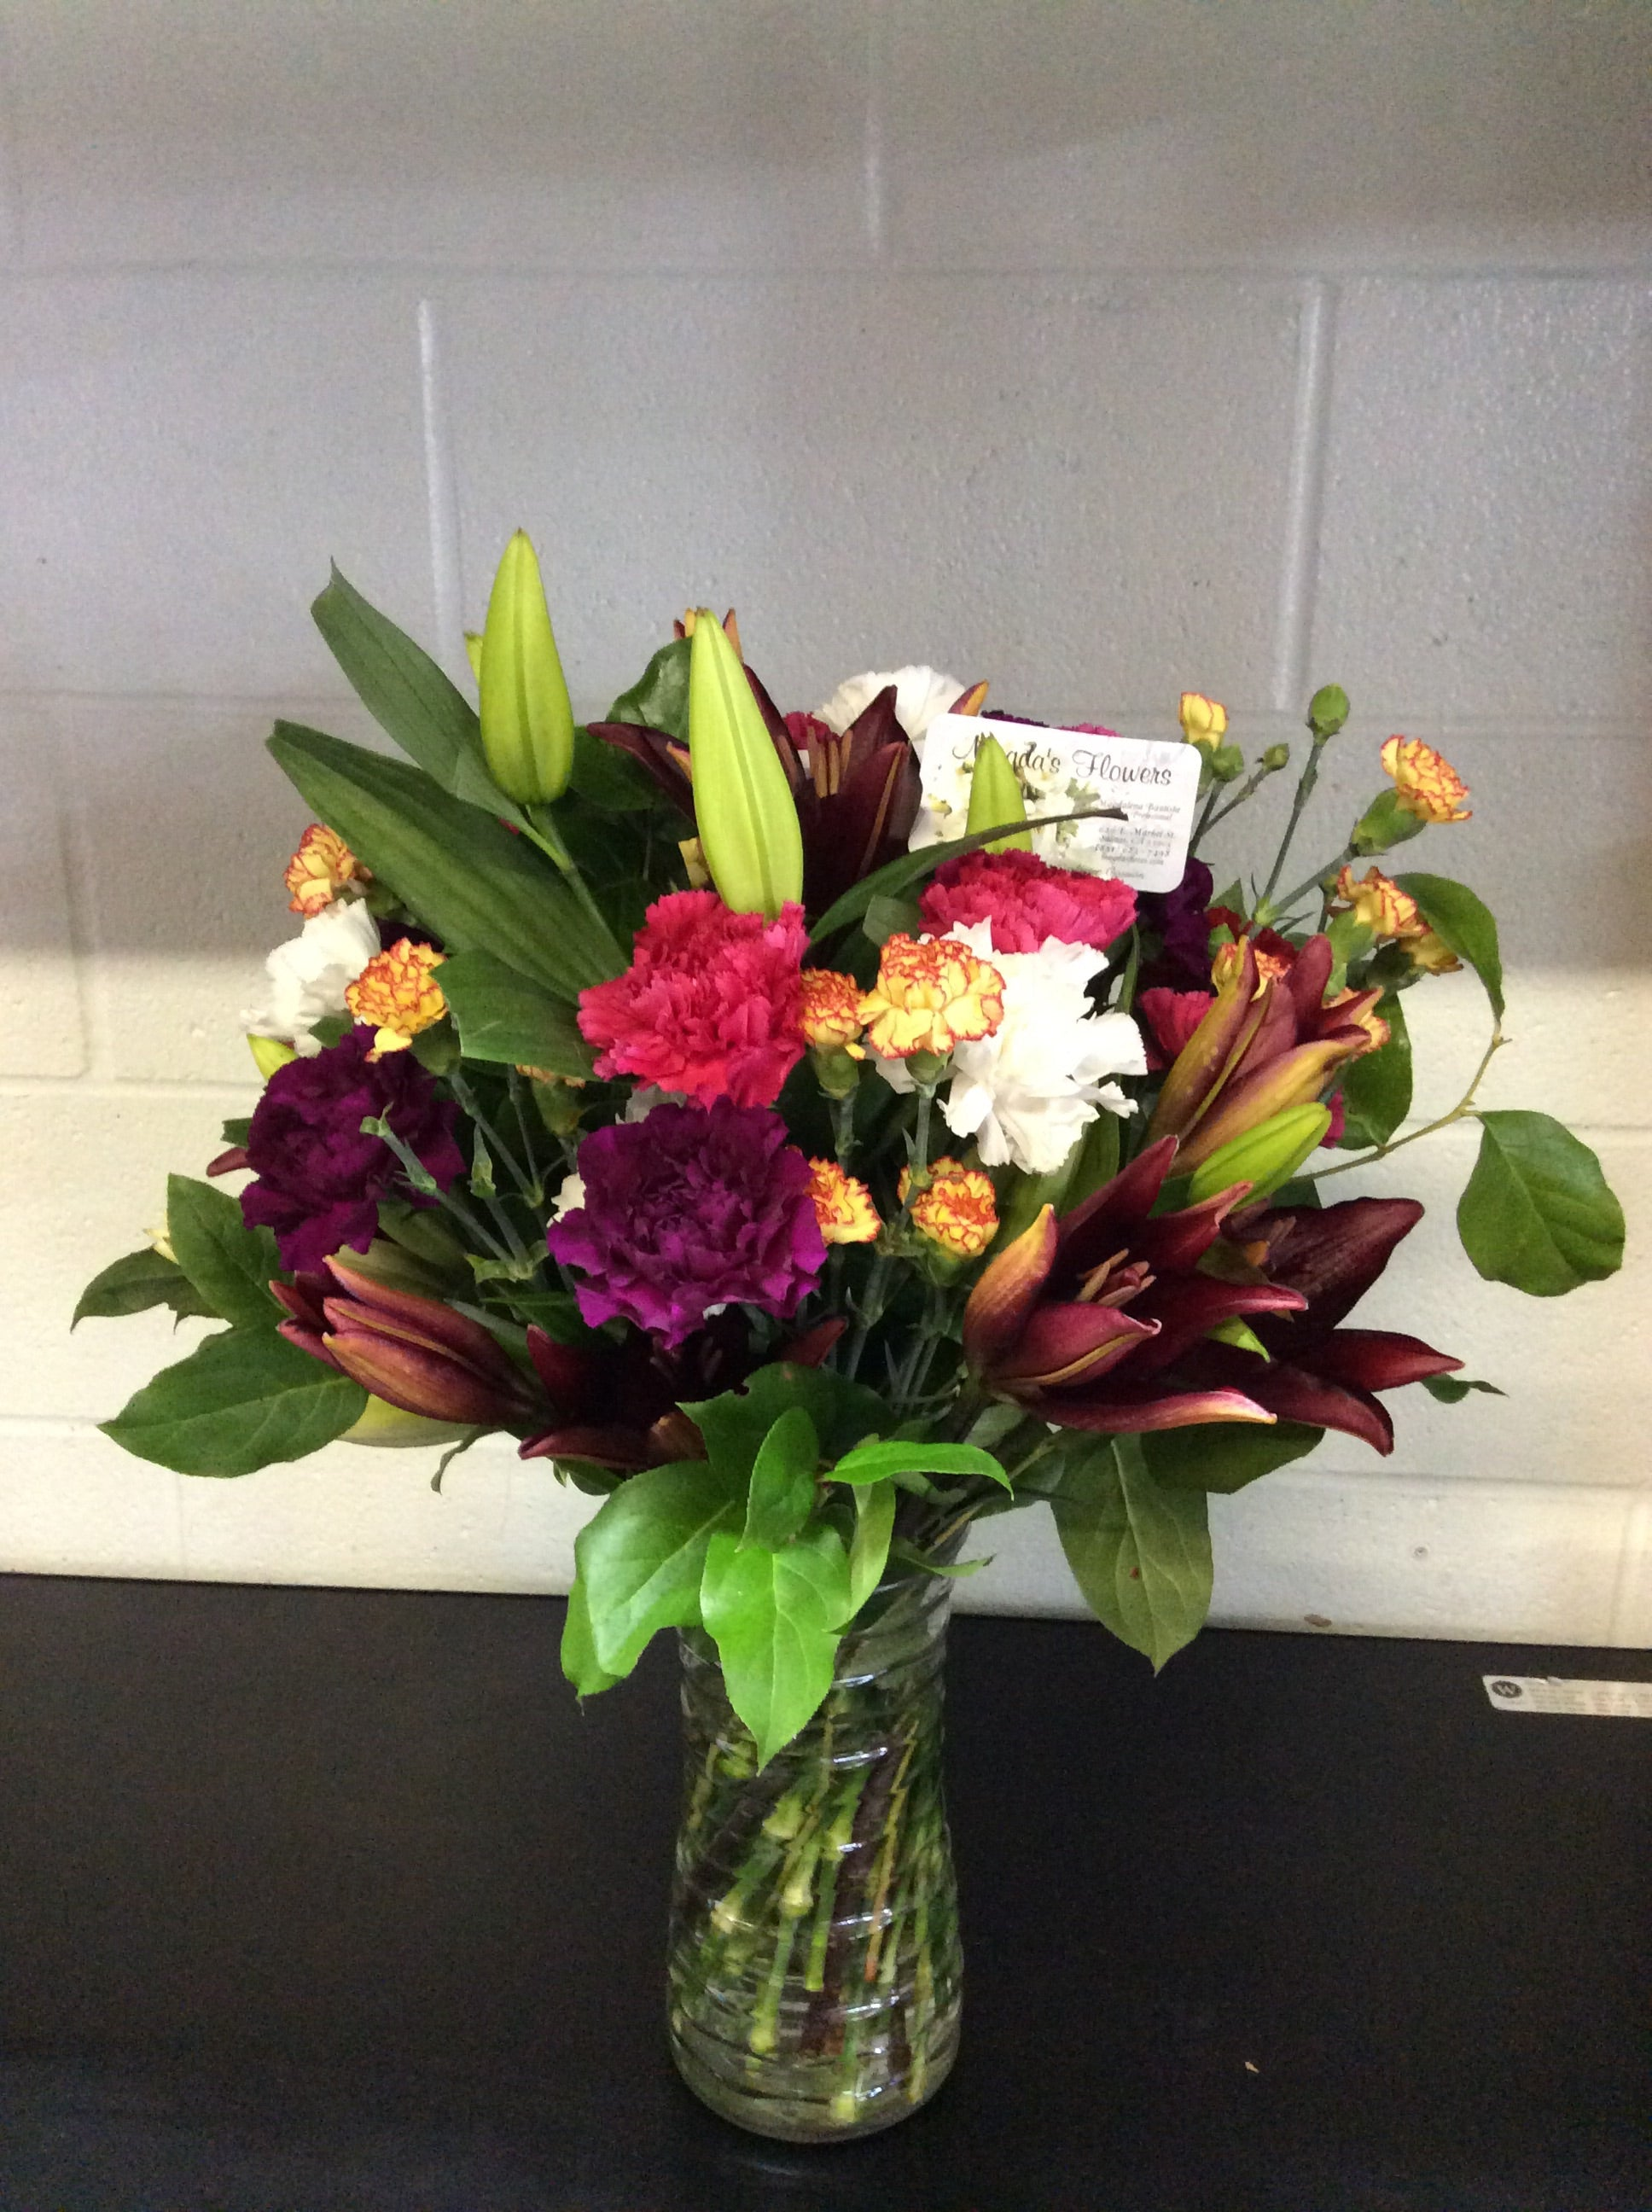 Colorful Floral Vase - Beautiful floral arrangement -  Order Flowers Online - Salinas Florist, Local Delivery - Magda's Flowers